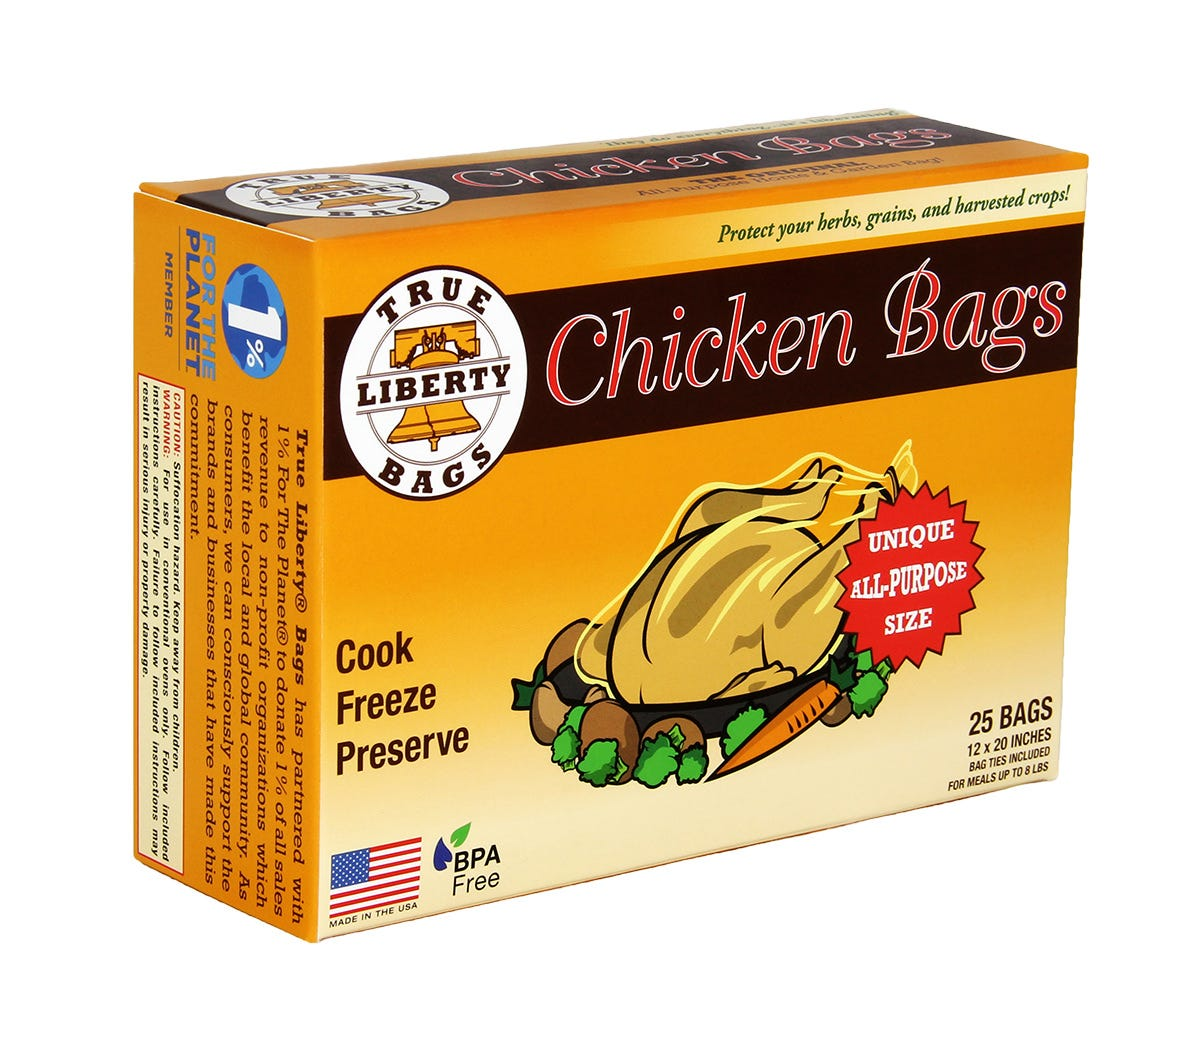 True Liberty Chicken Bags 12 in x 20 in (25/Pack) True Liberty® Bags are THE ORIGINAL All-Purpose Home & Garden bag. These bags are used by commercial organic farmers, food storage experts, and hobby growers to keep their foods fresh, healthy, and delicious. True Liberty® Bags are safe to use in your conventional oven, freezer, rice cooker, slow cooker, or stove top, as they are resistant to cold, heat, fat, grease, oil, and water. True Liberty® Bags have an excellent aroma barrier, which makes for a fantastically versatile, all-around home and garden bag.